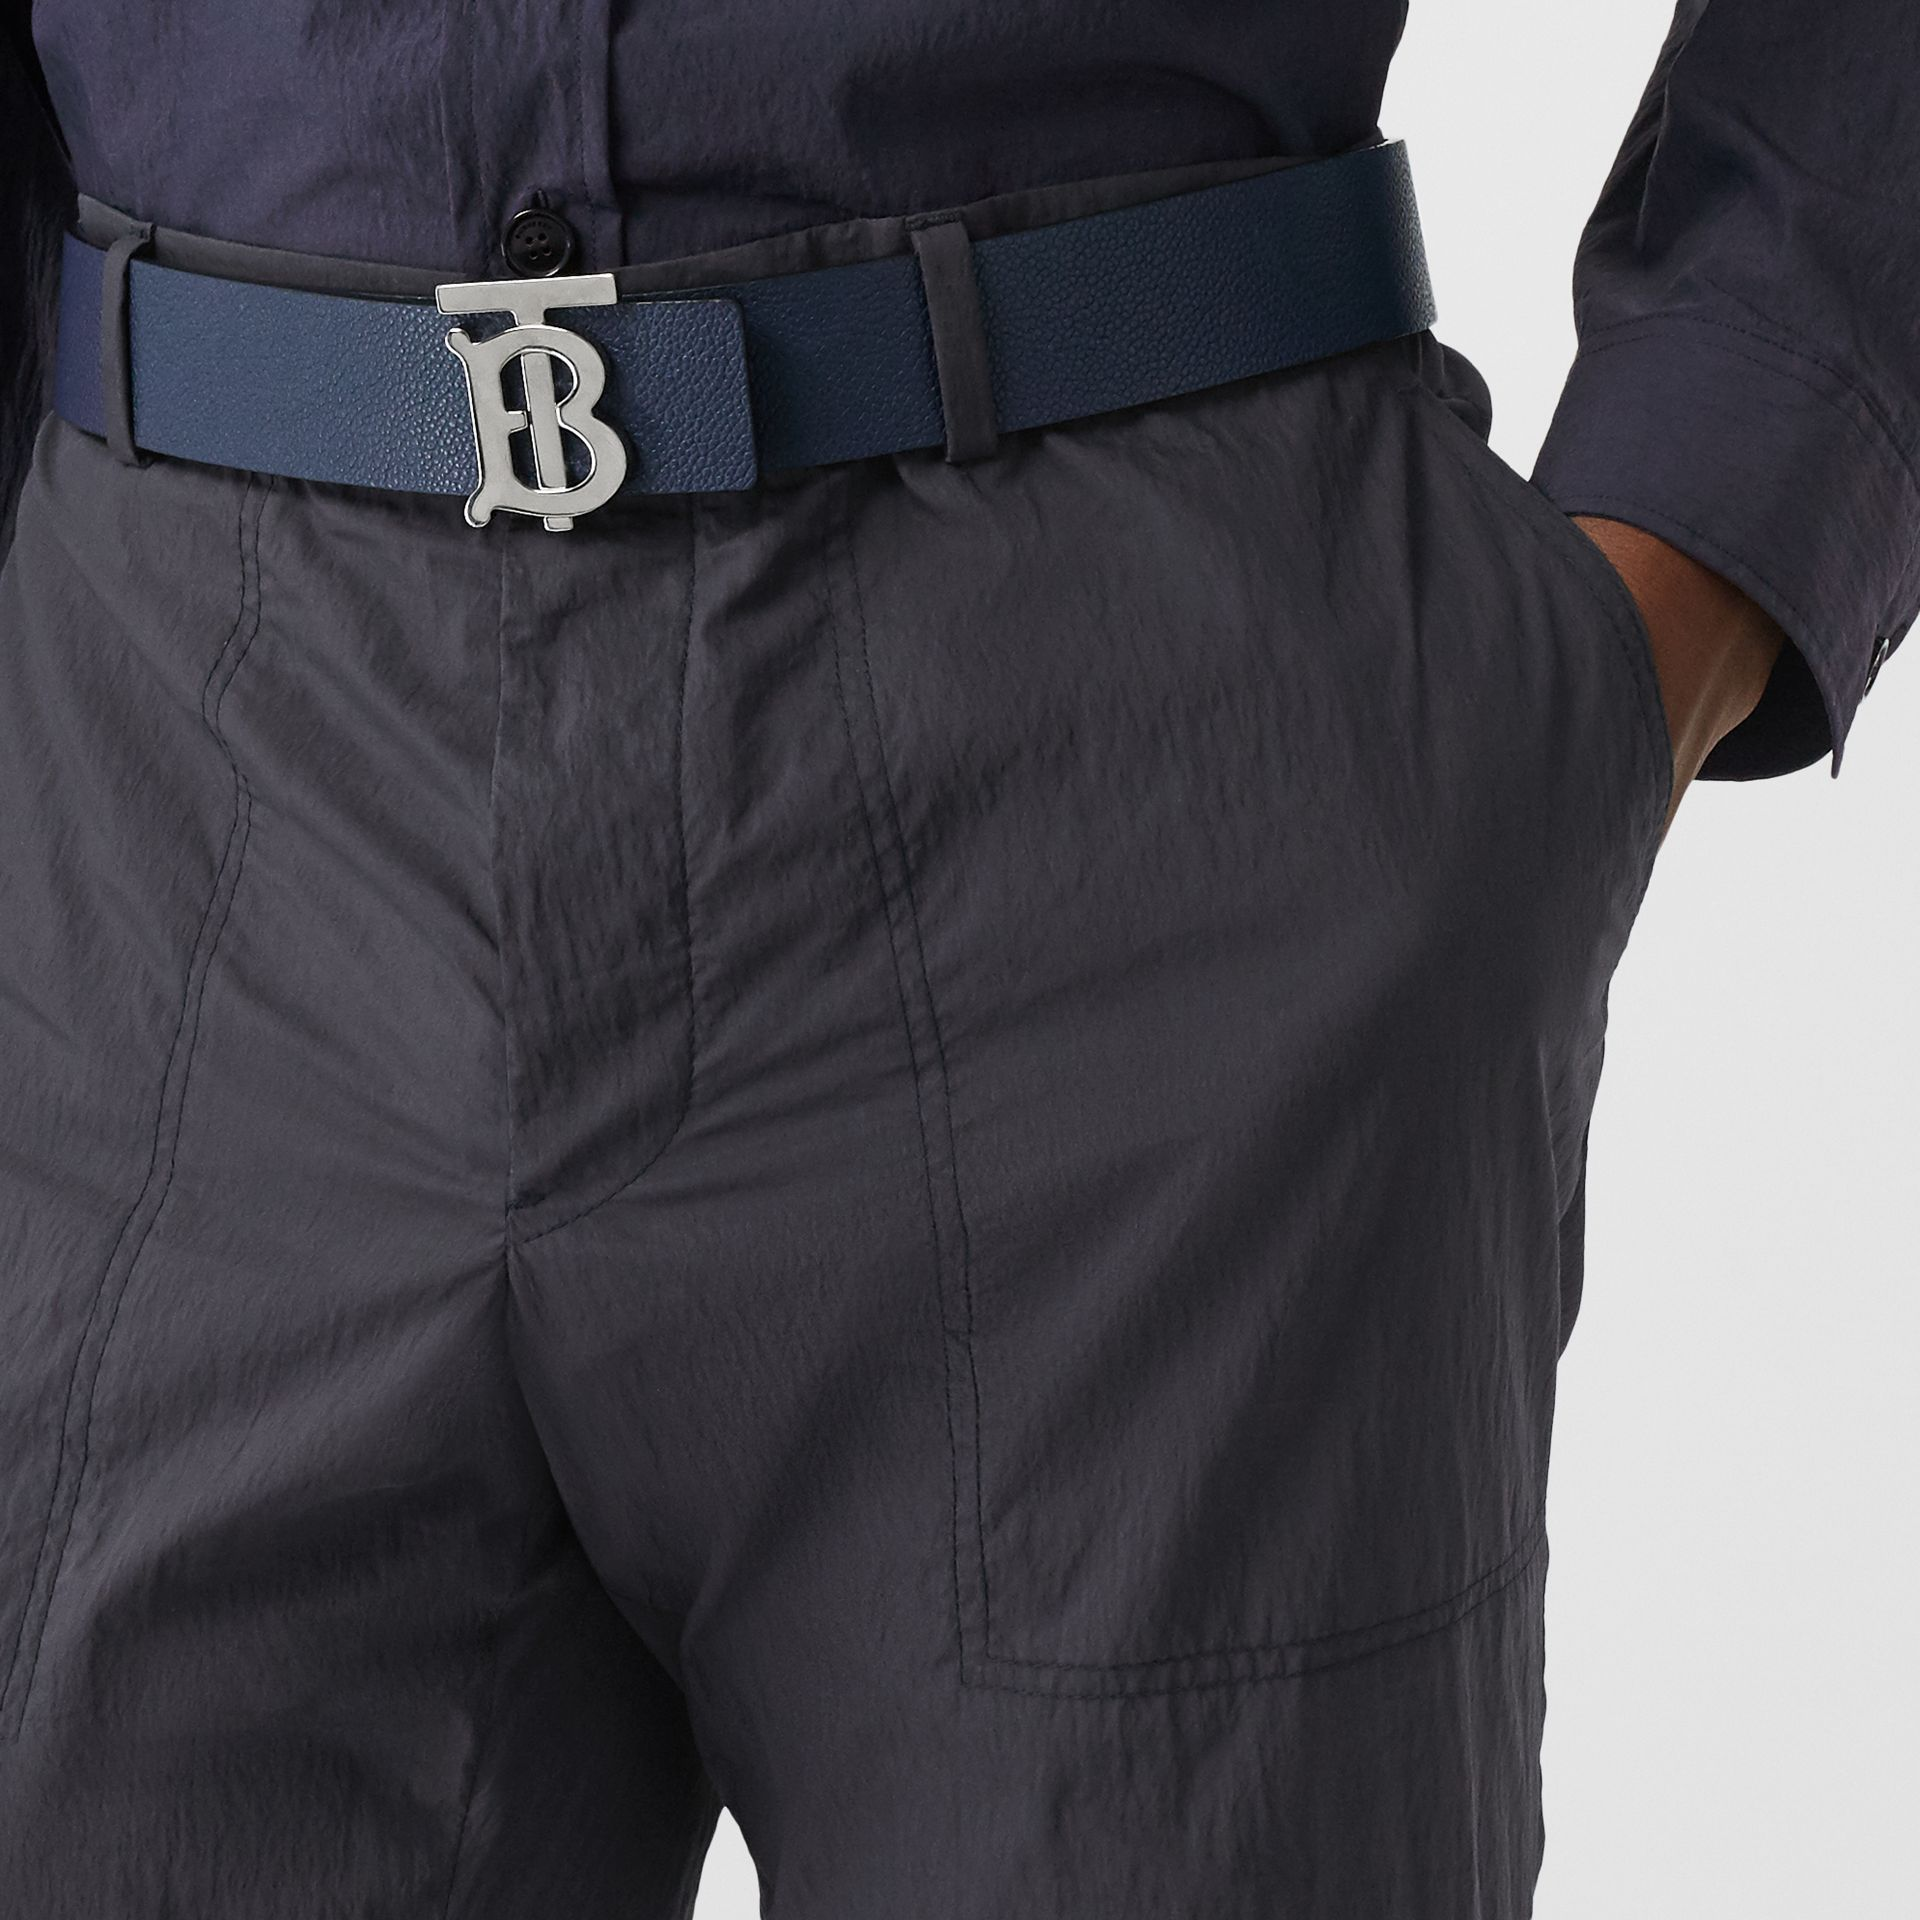 Classic Fit Cotton Blend Tailored Trousers in Navy - Men | Burberry Canada - gallery image 1